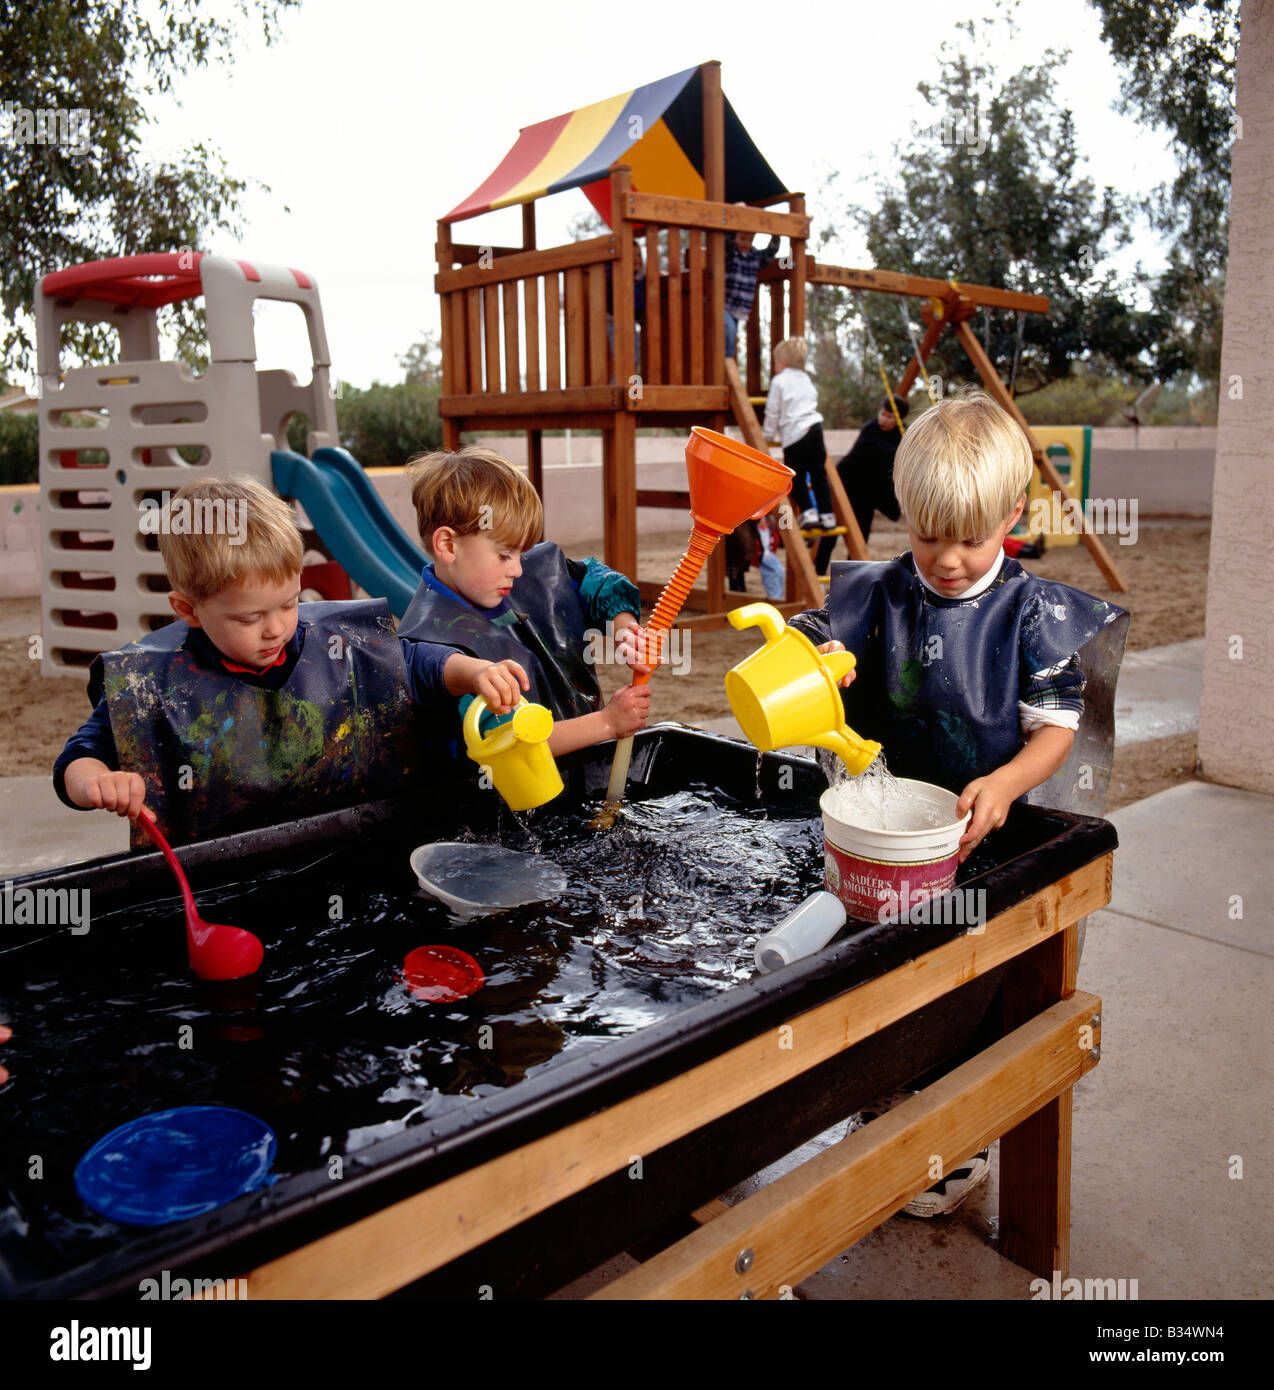 Kinder Garden: Young Children Playing At A Water Table Game In An Arizona